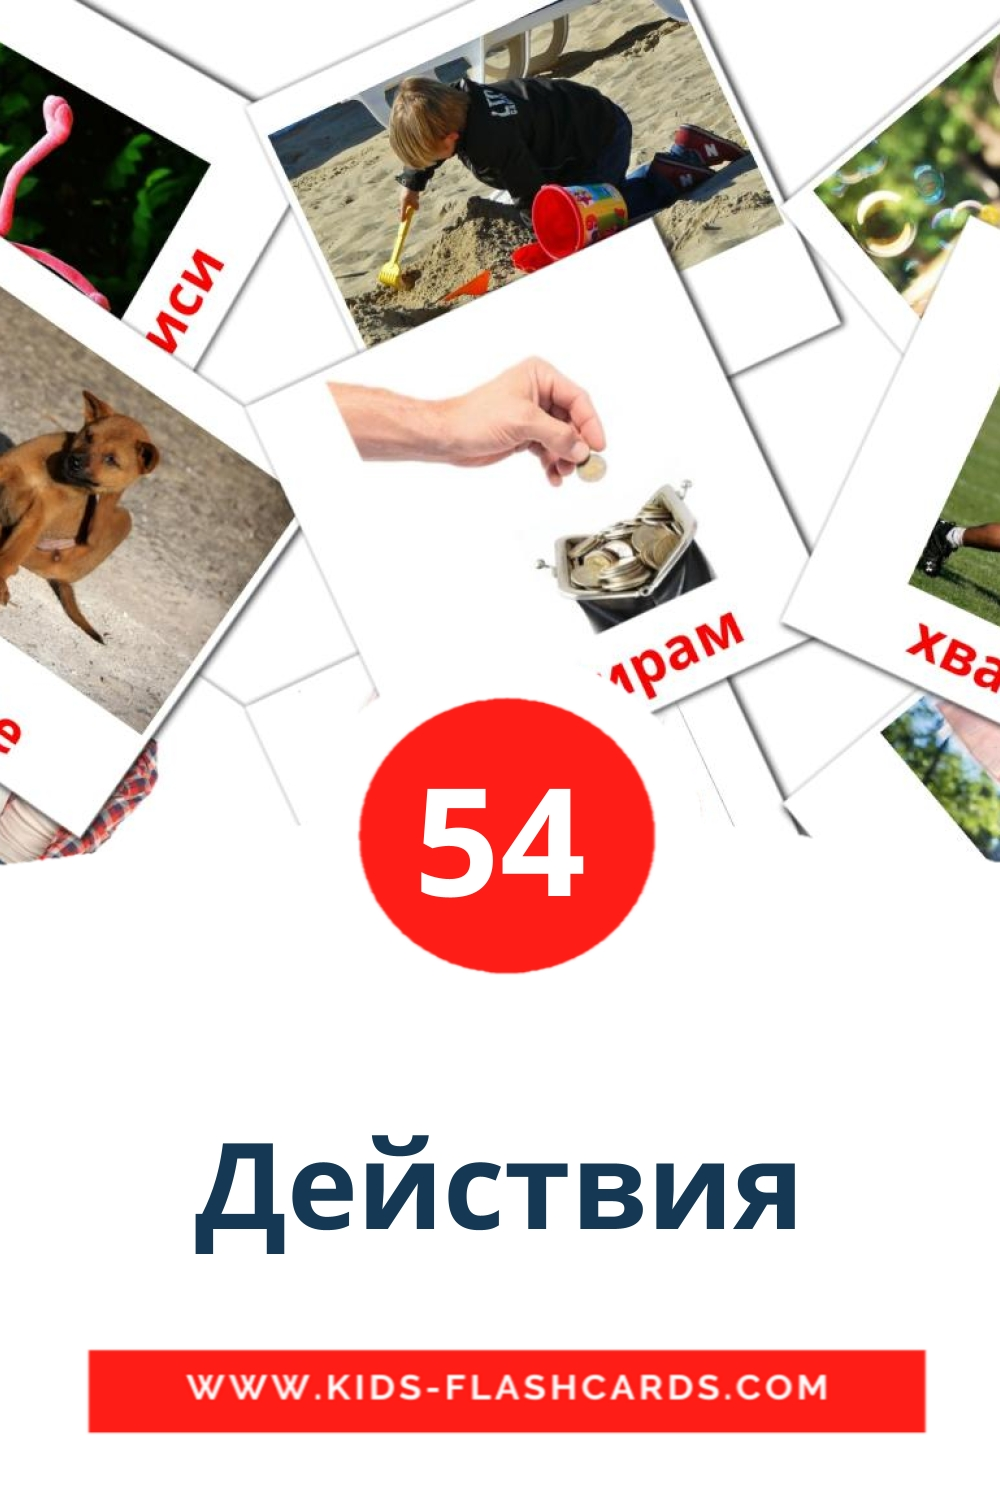 55 Действия Picture Cards for Kindergarden in bulgarian